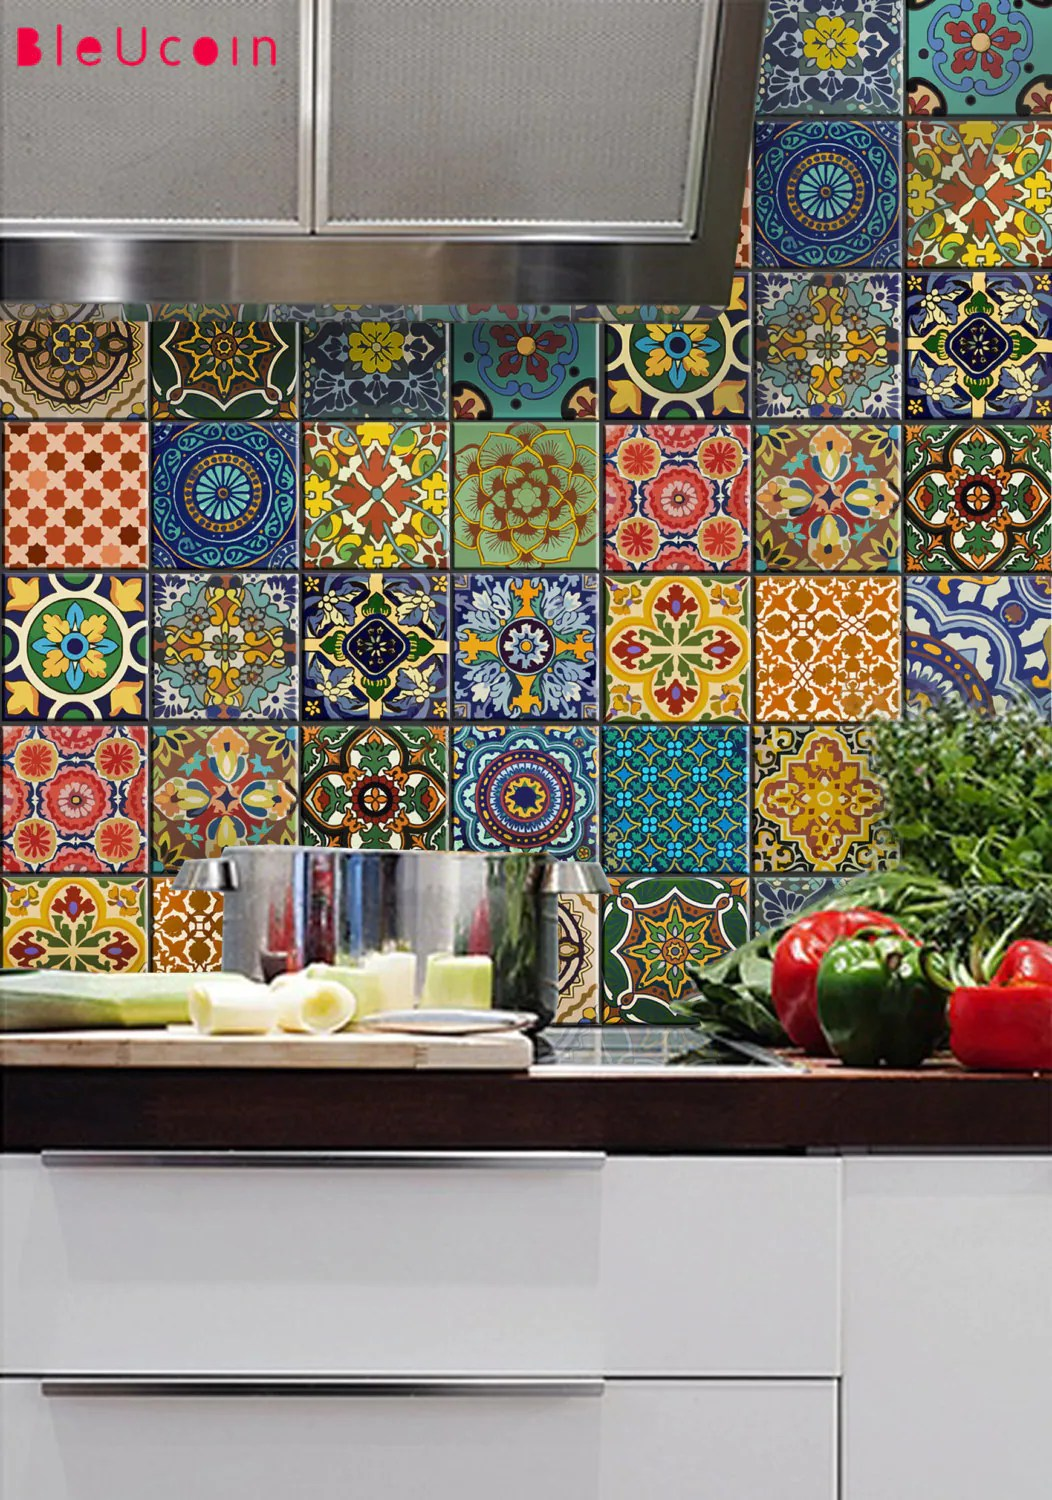 bleucoin mexican talavera peel n stick tile stickers for tile wall stair floor kitchen bath backsplash removable waterproof pack of 44